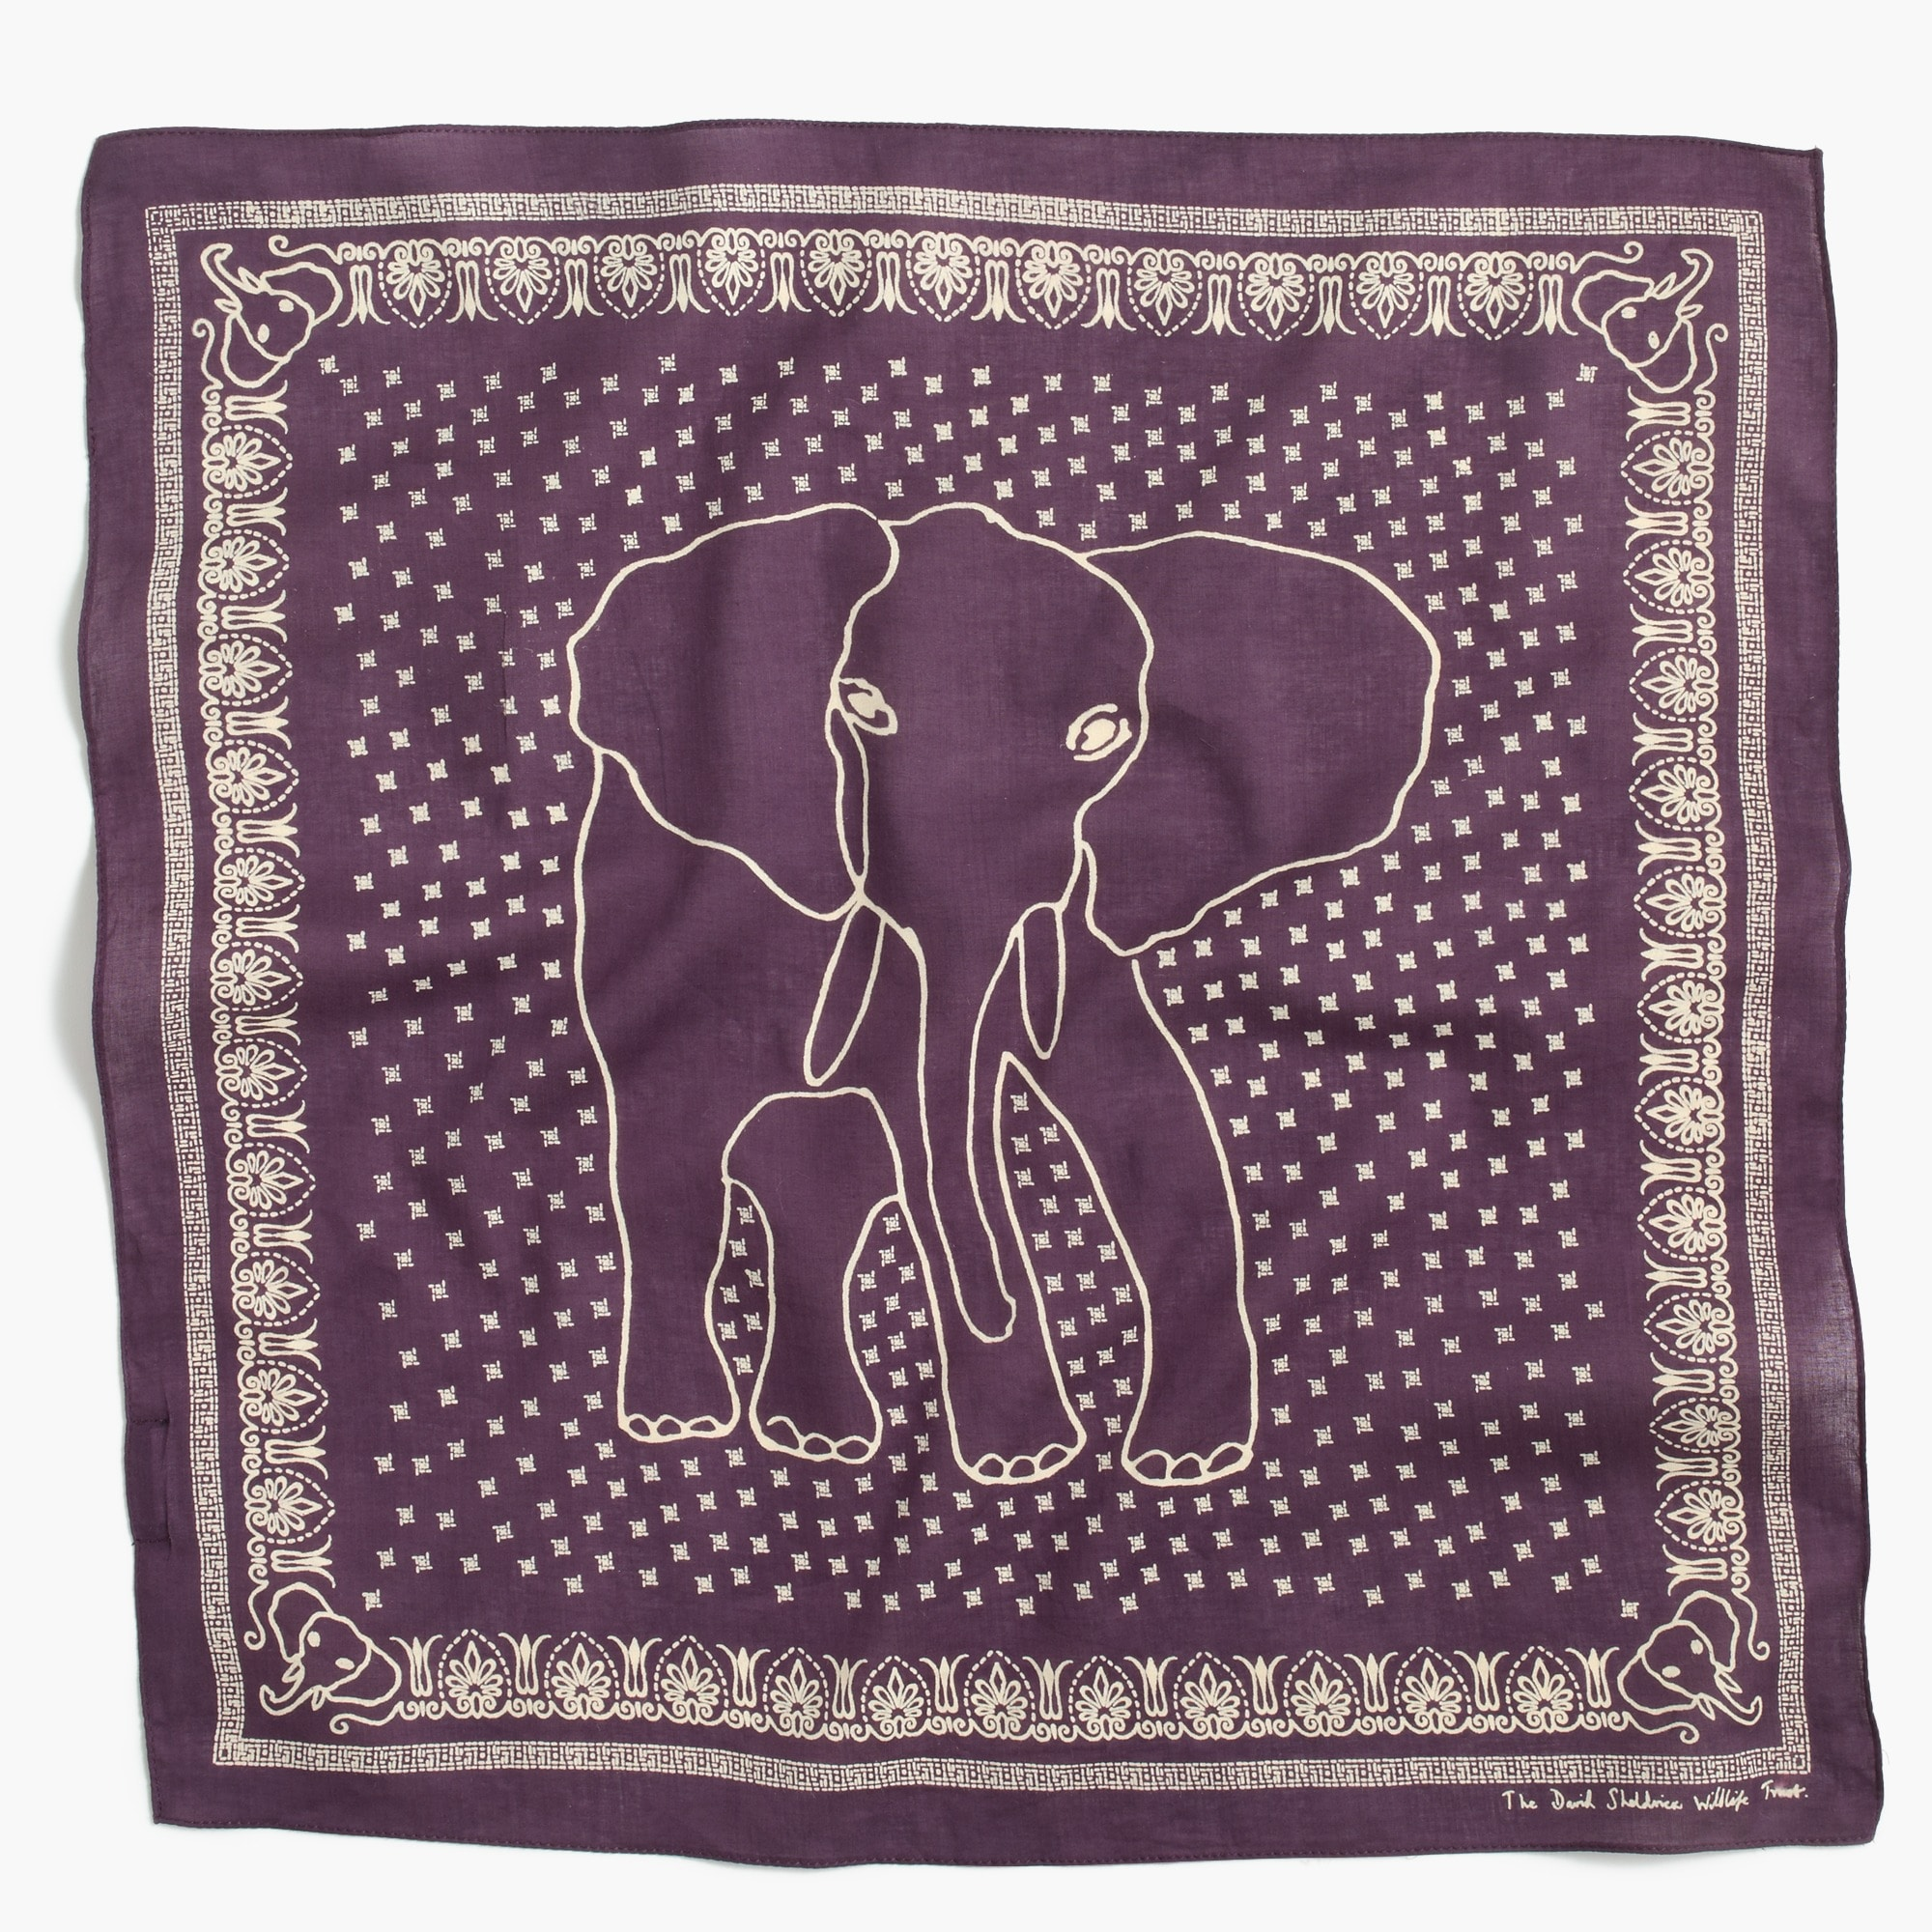 j.crew for david sheldrick wildlife trust elephant bandana : men's accessories